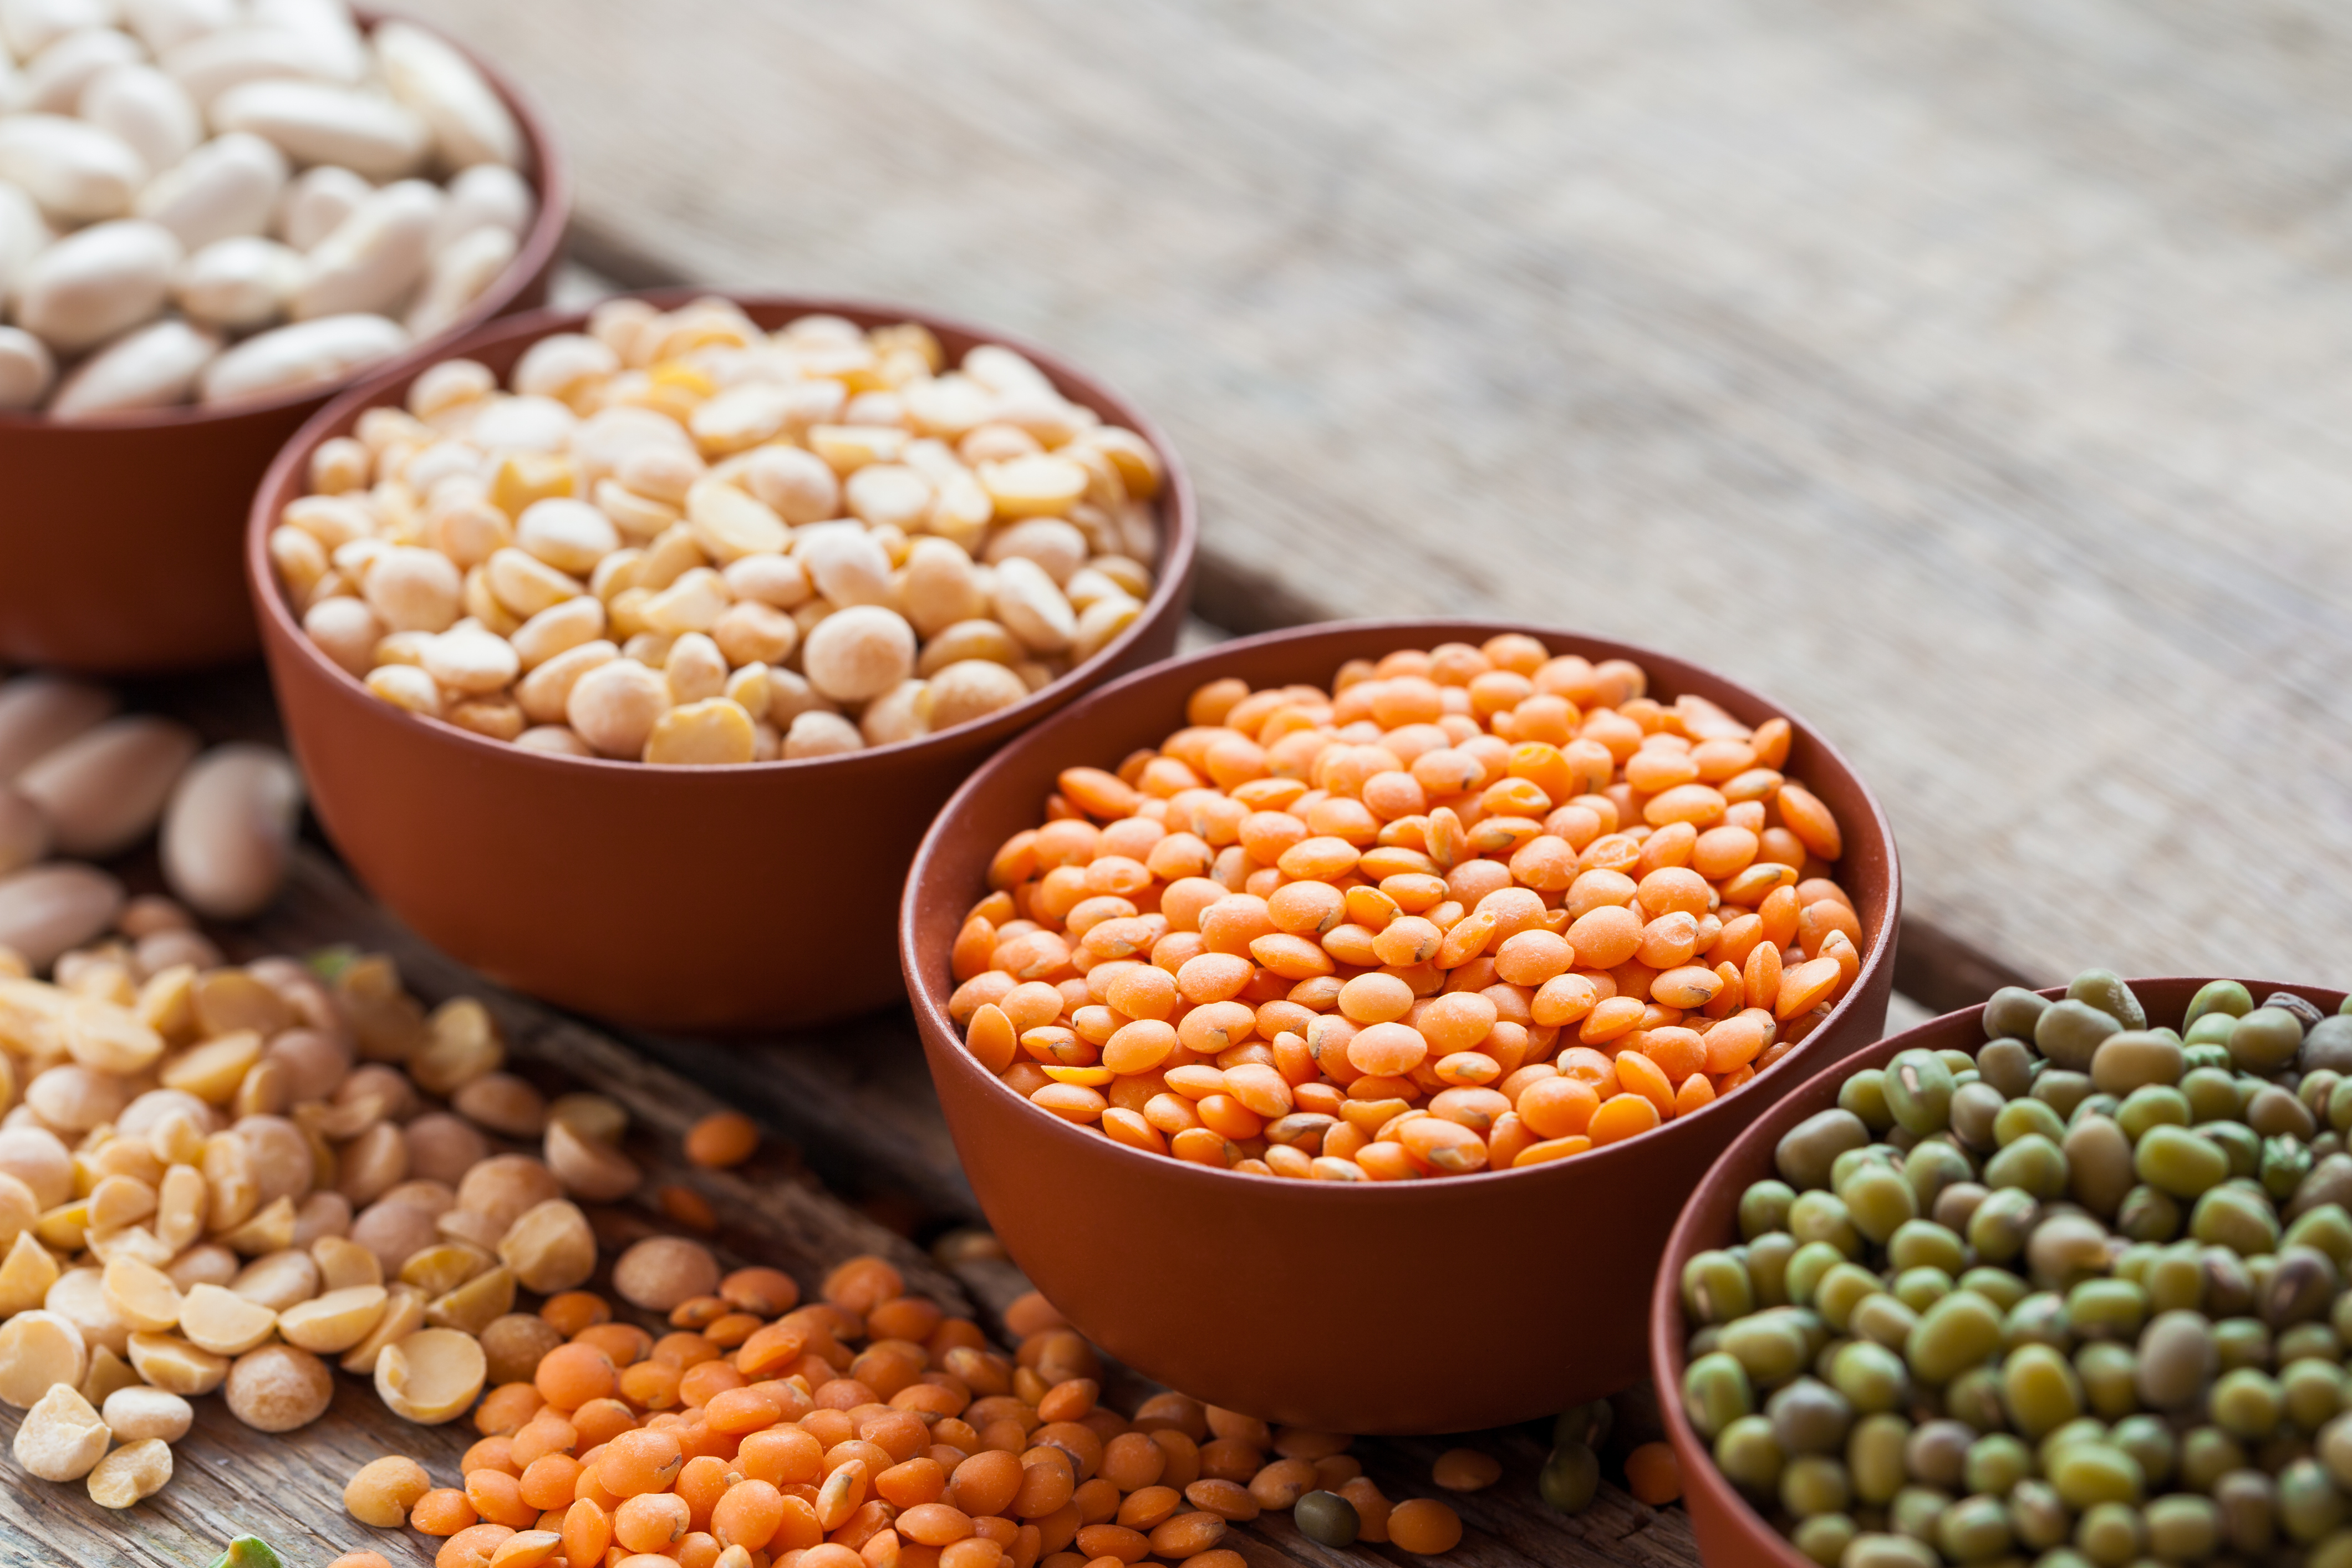 Dried Beans vs  Canned Beans for Nutritional Values